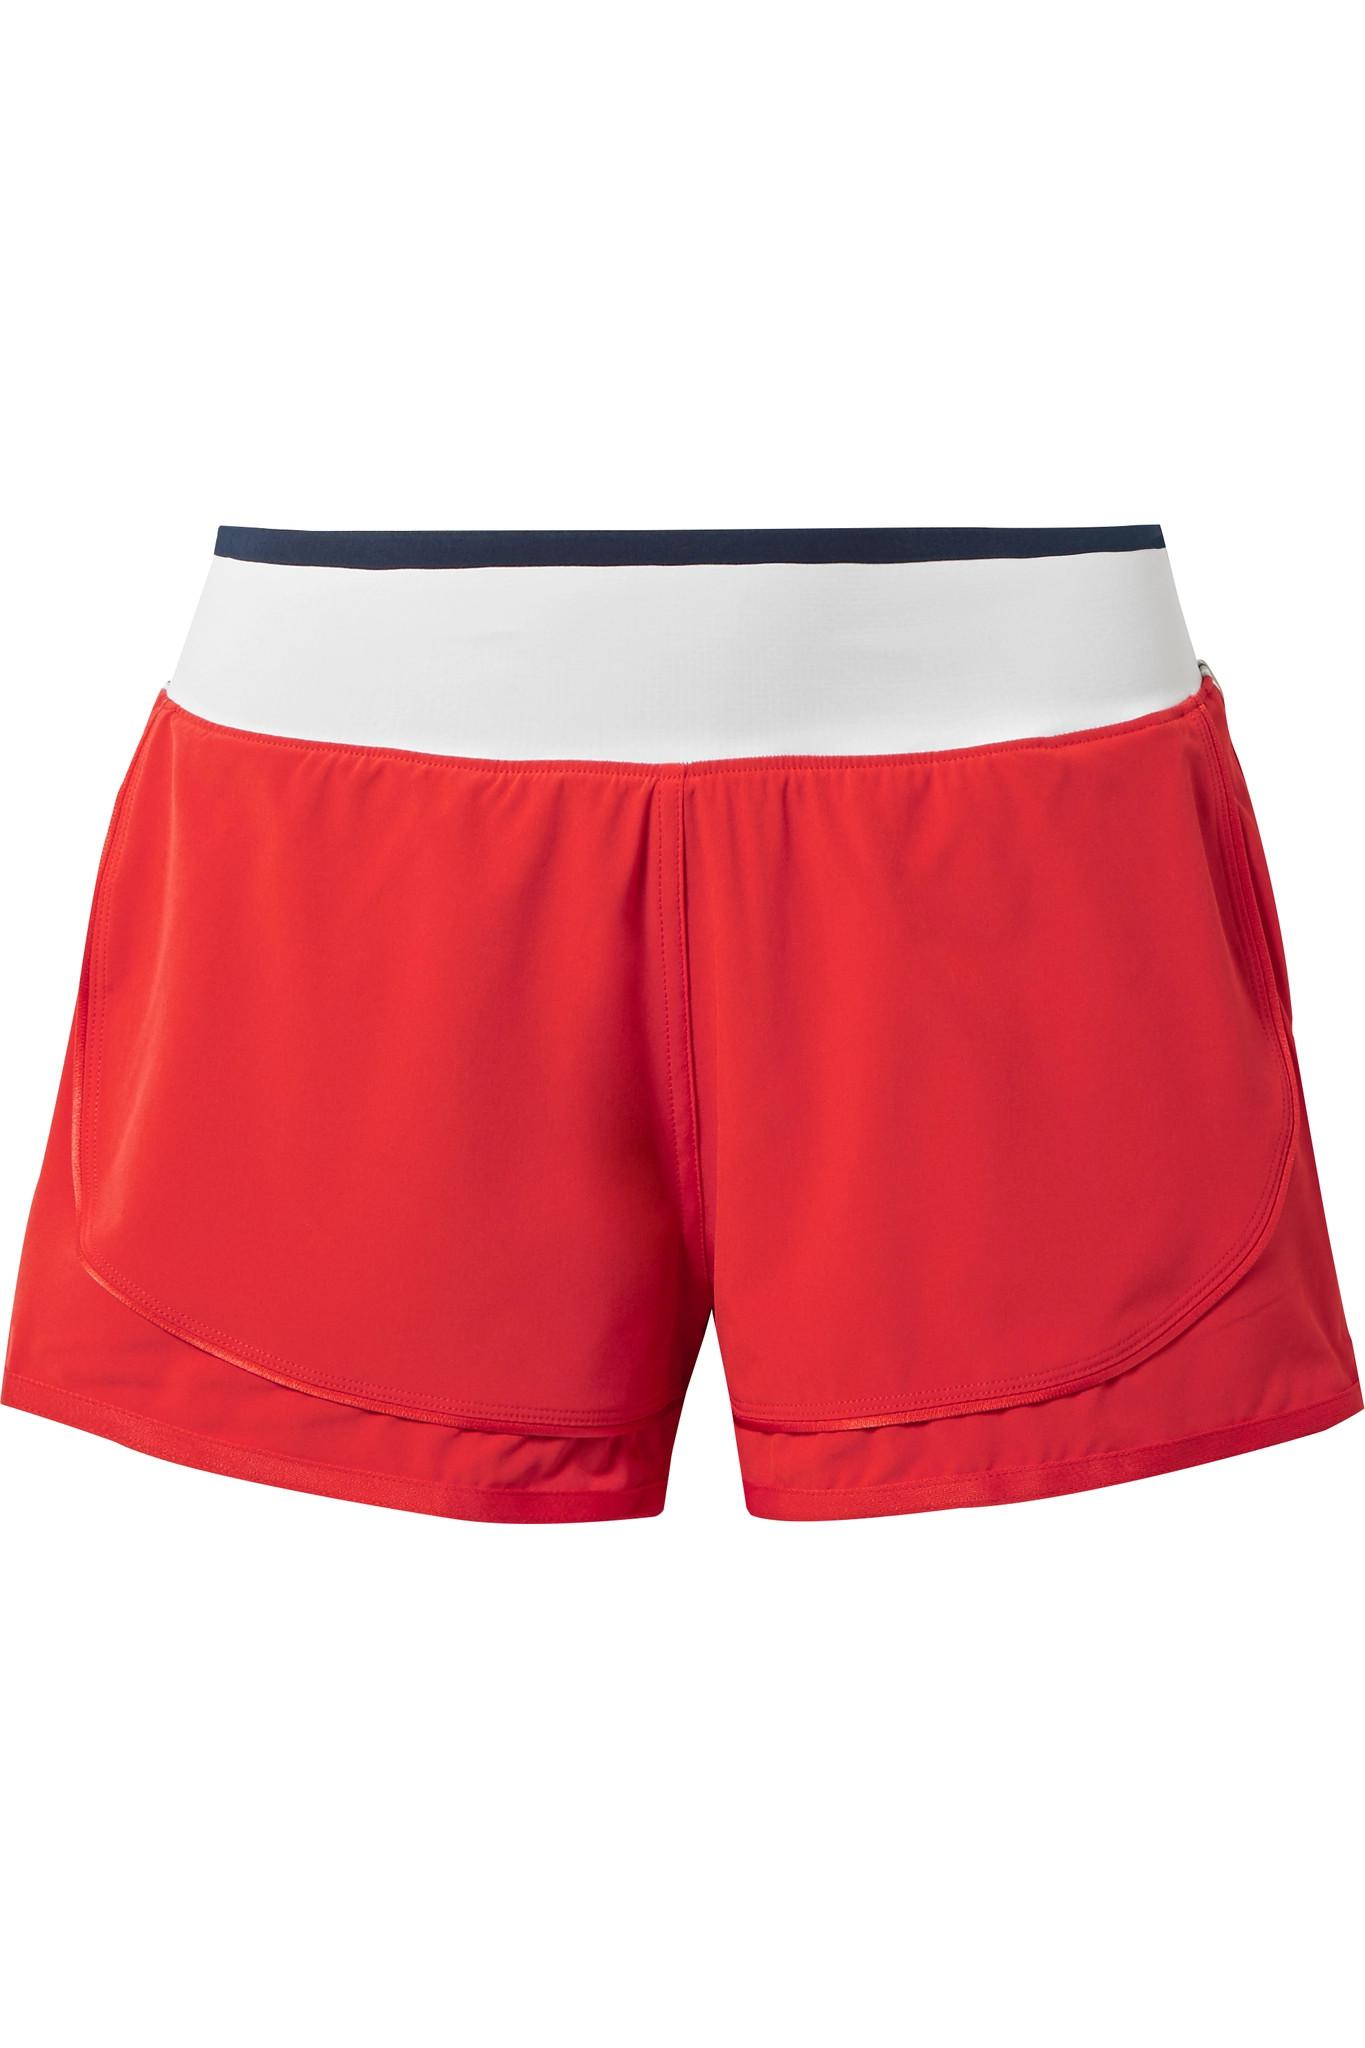 Websites Cheap For Sale Climastorm Hiit Striped Layered Stretch Shorts - Light blue adidas by Stella McCartney Outlet Latest NVhii